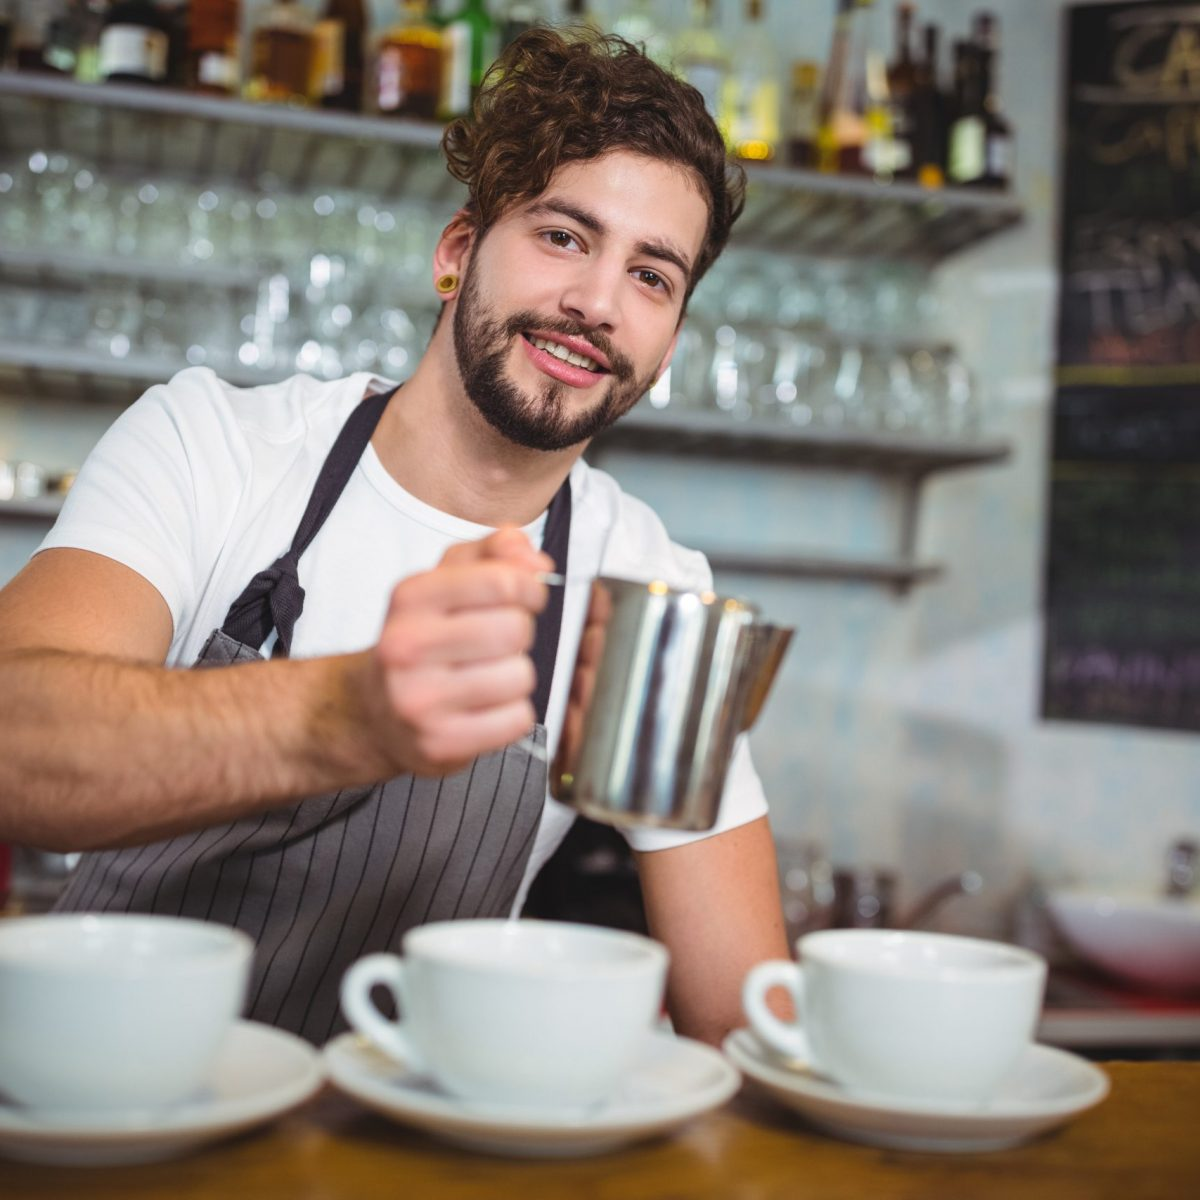 guy making coffees